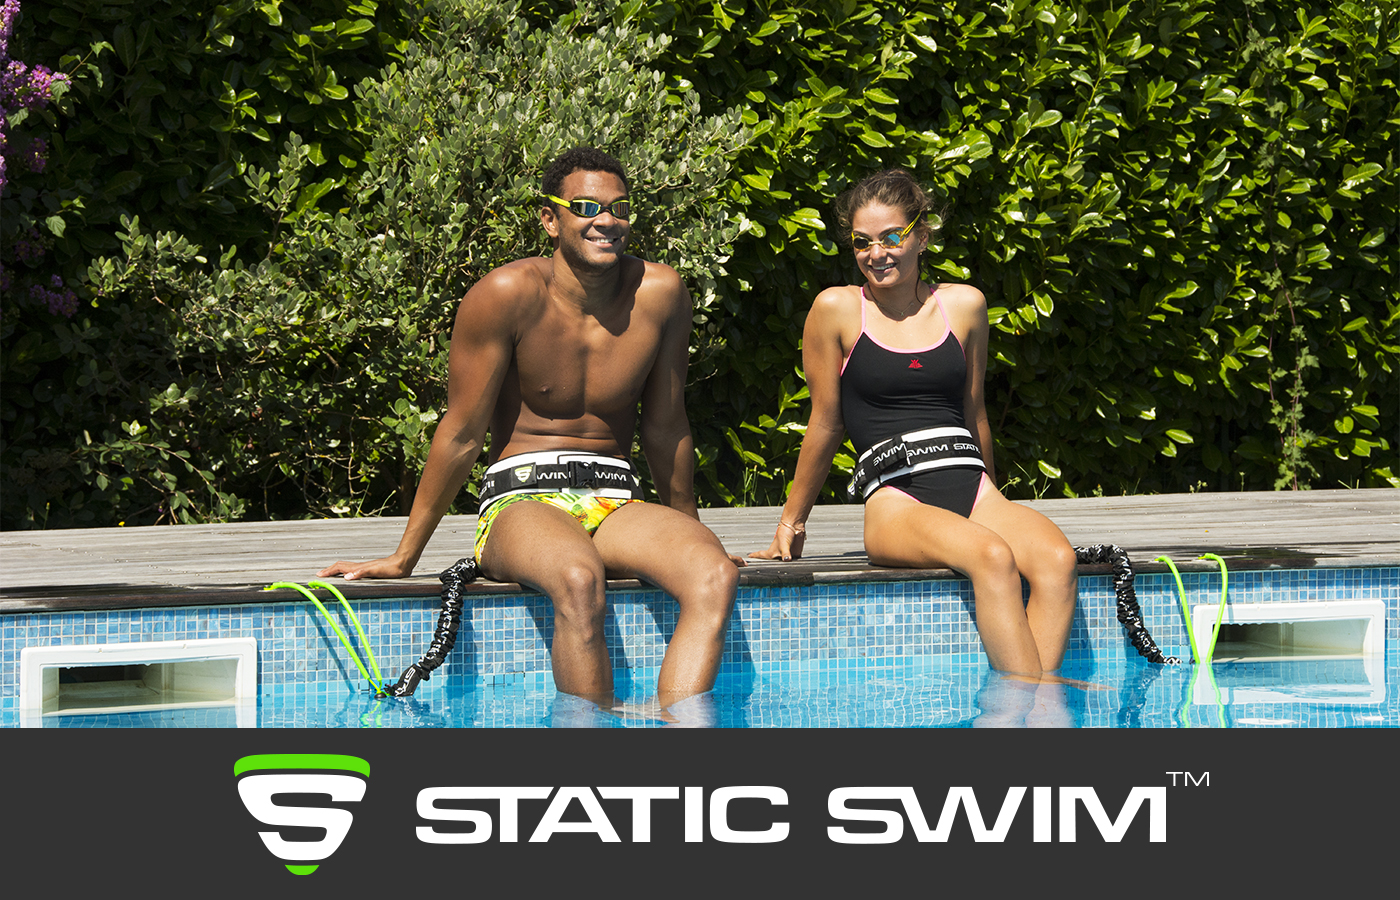 STATIC SWIM™ nageurs piscine